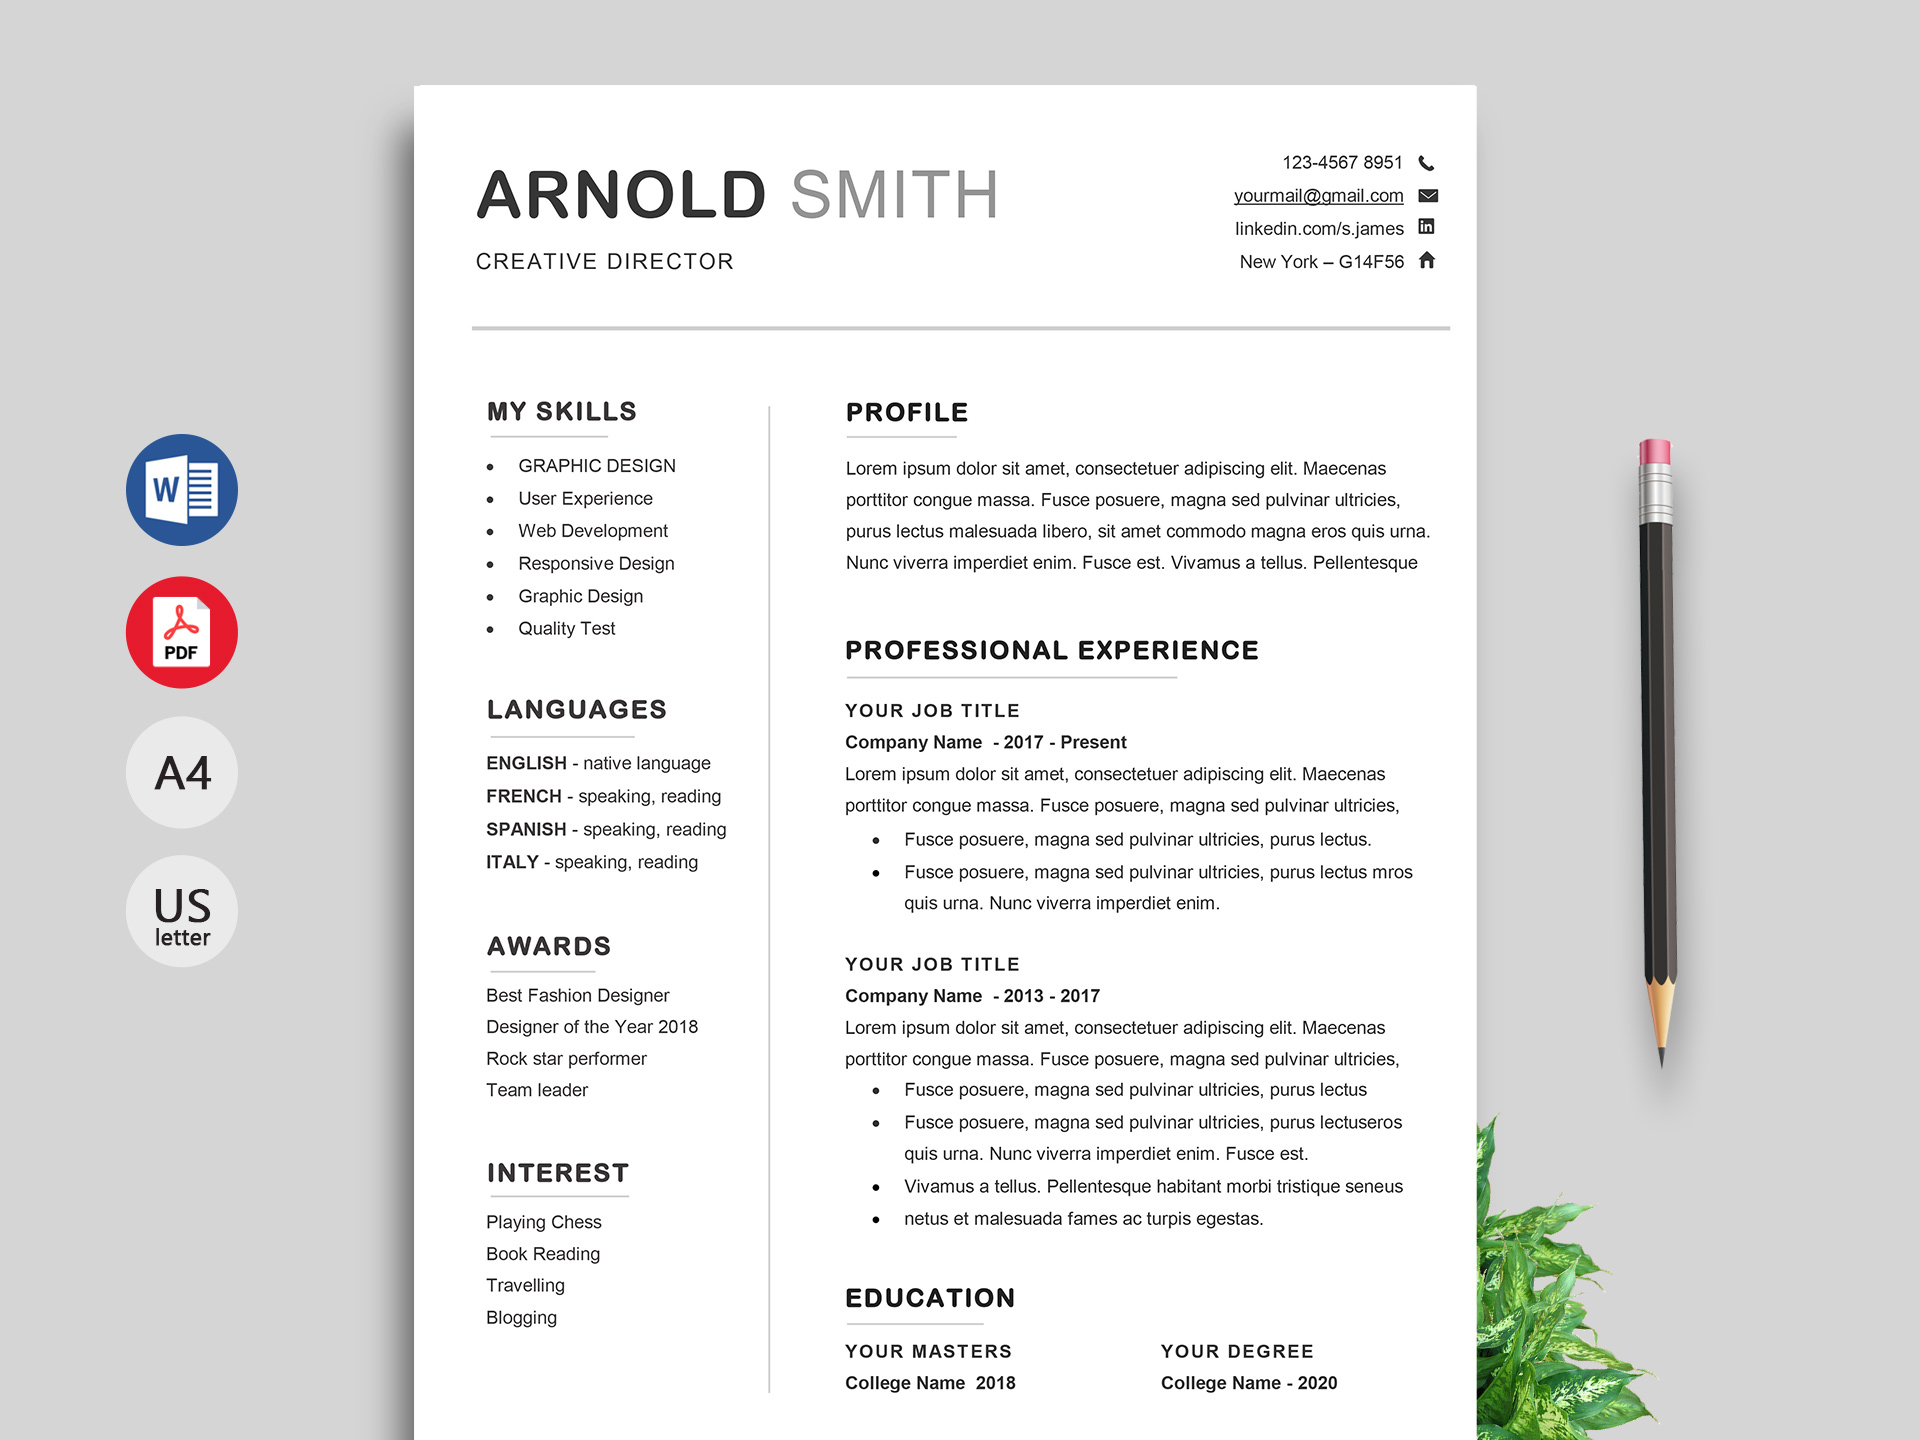 Resume Template Free Ace Word Resume Template Free Download 1 resume template free|wikiresume.com